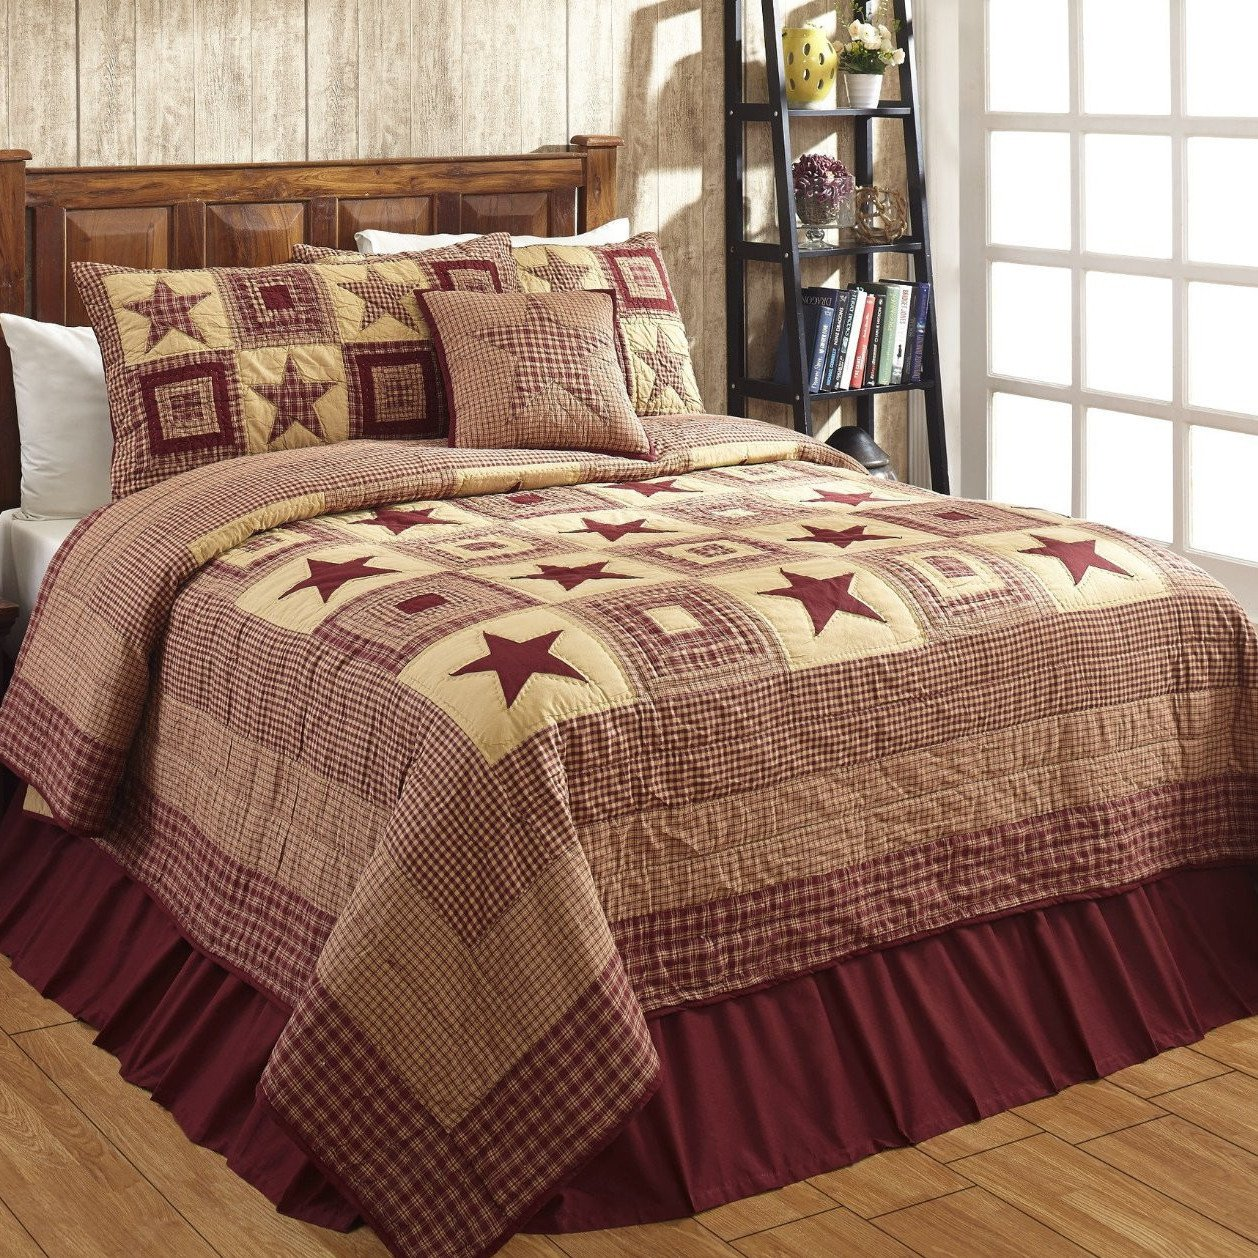 Colonial Star Burgundy Tan Quilted Bedding Set 3 Pc King